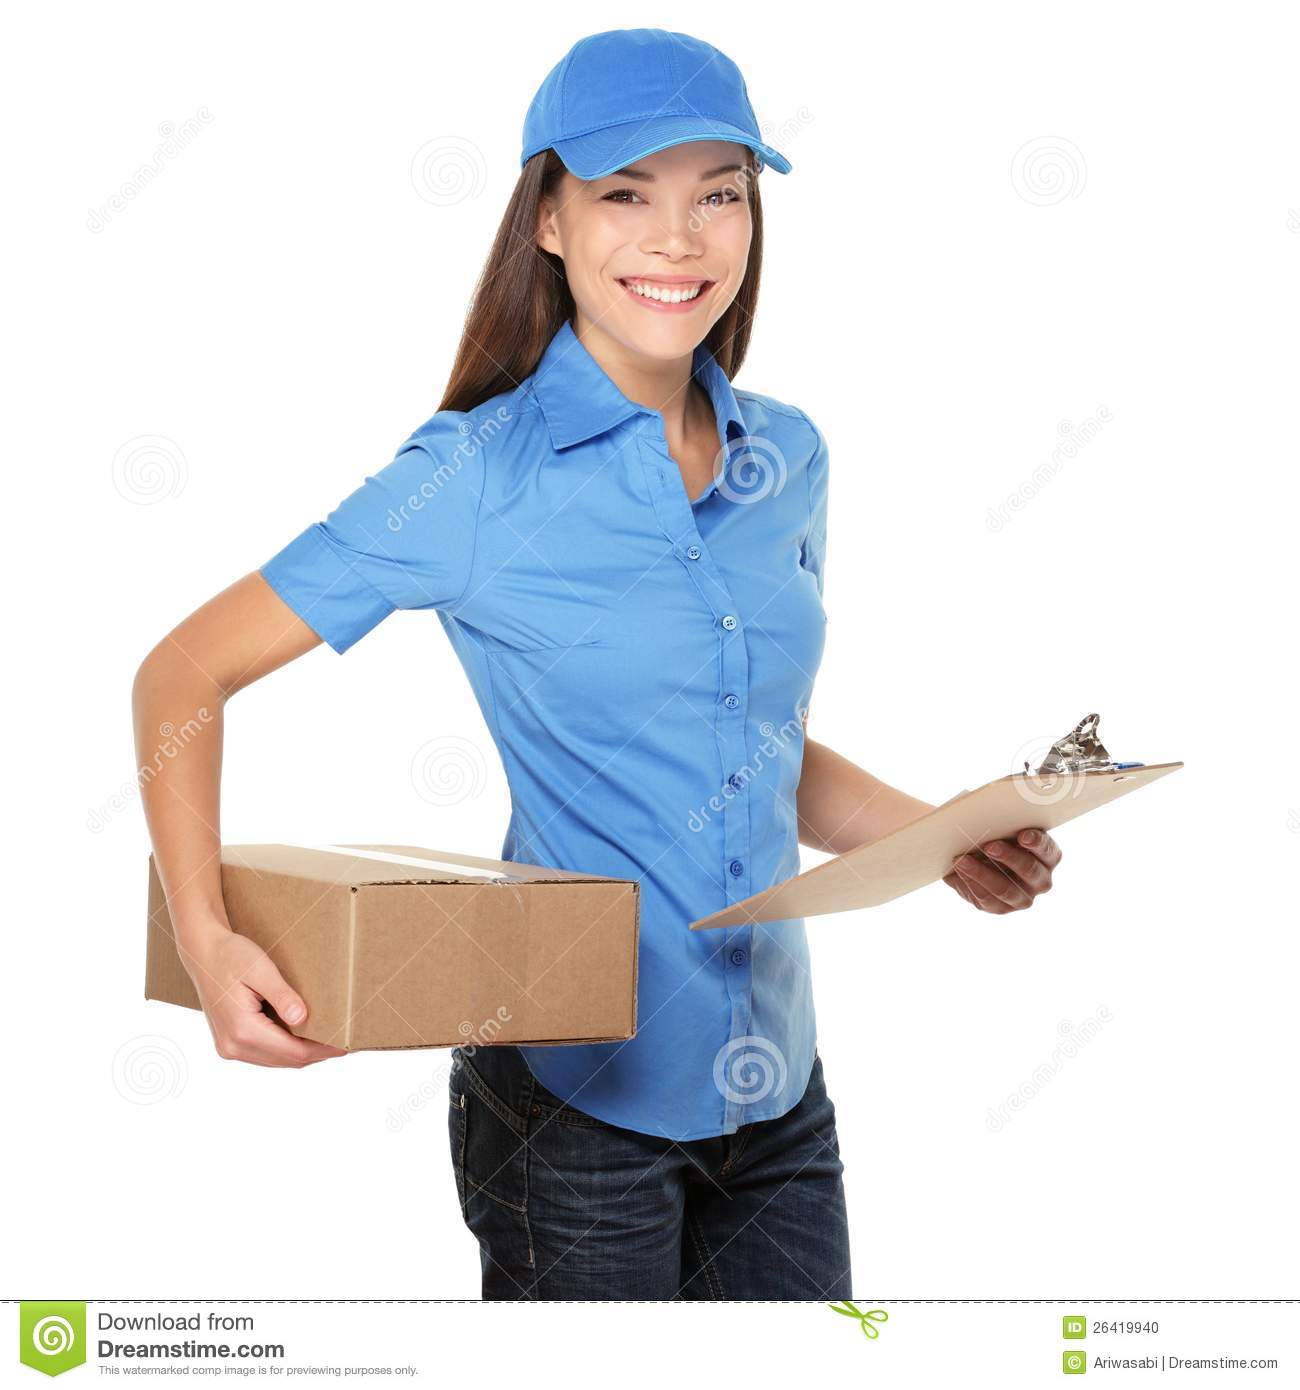 Delivery Person Delivering Package Stock Photo - Image: 26419940